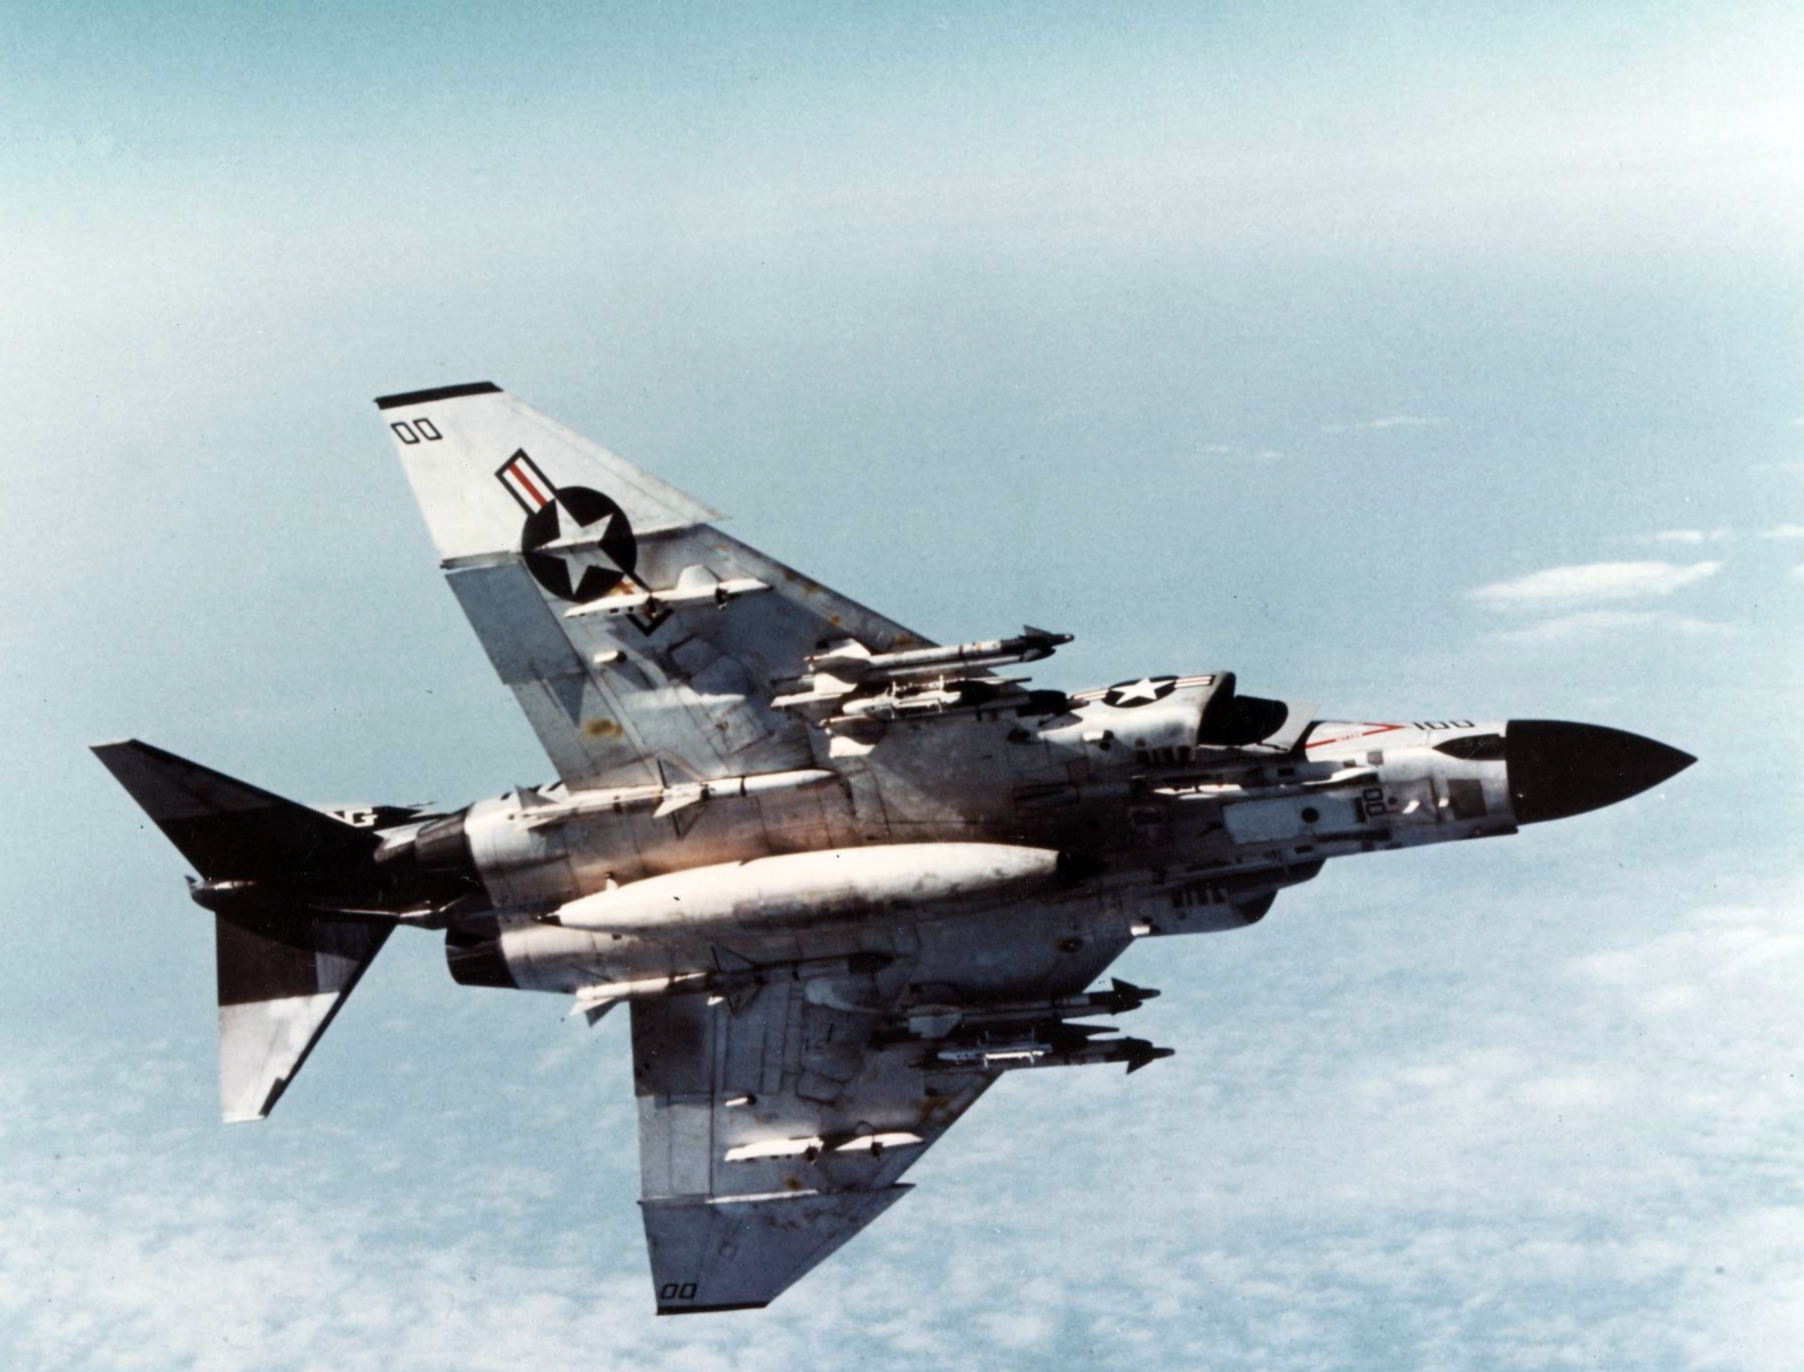 http://upload.wikimedia.org/wikipedia/commons/1/12/F-4J_VF-96_Showtime_100_armed_from_below.jpg